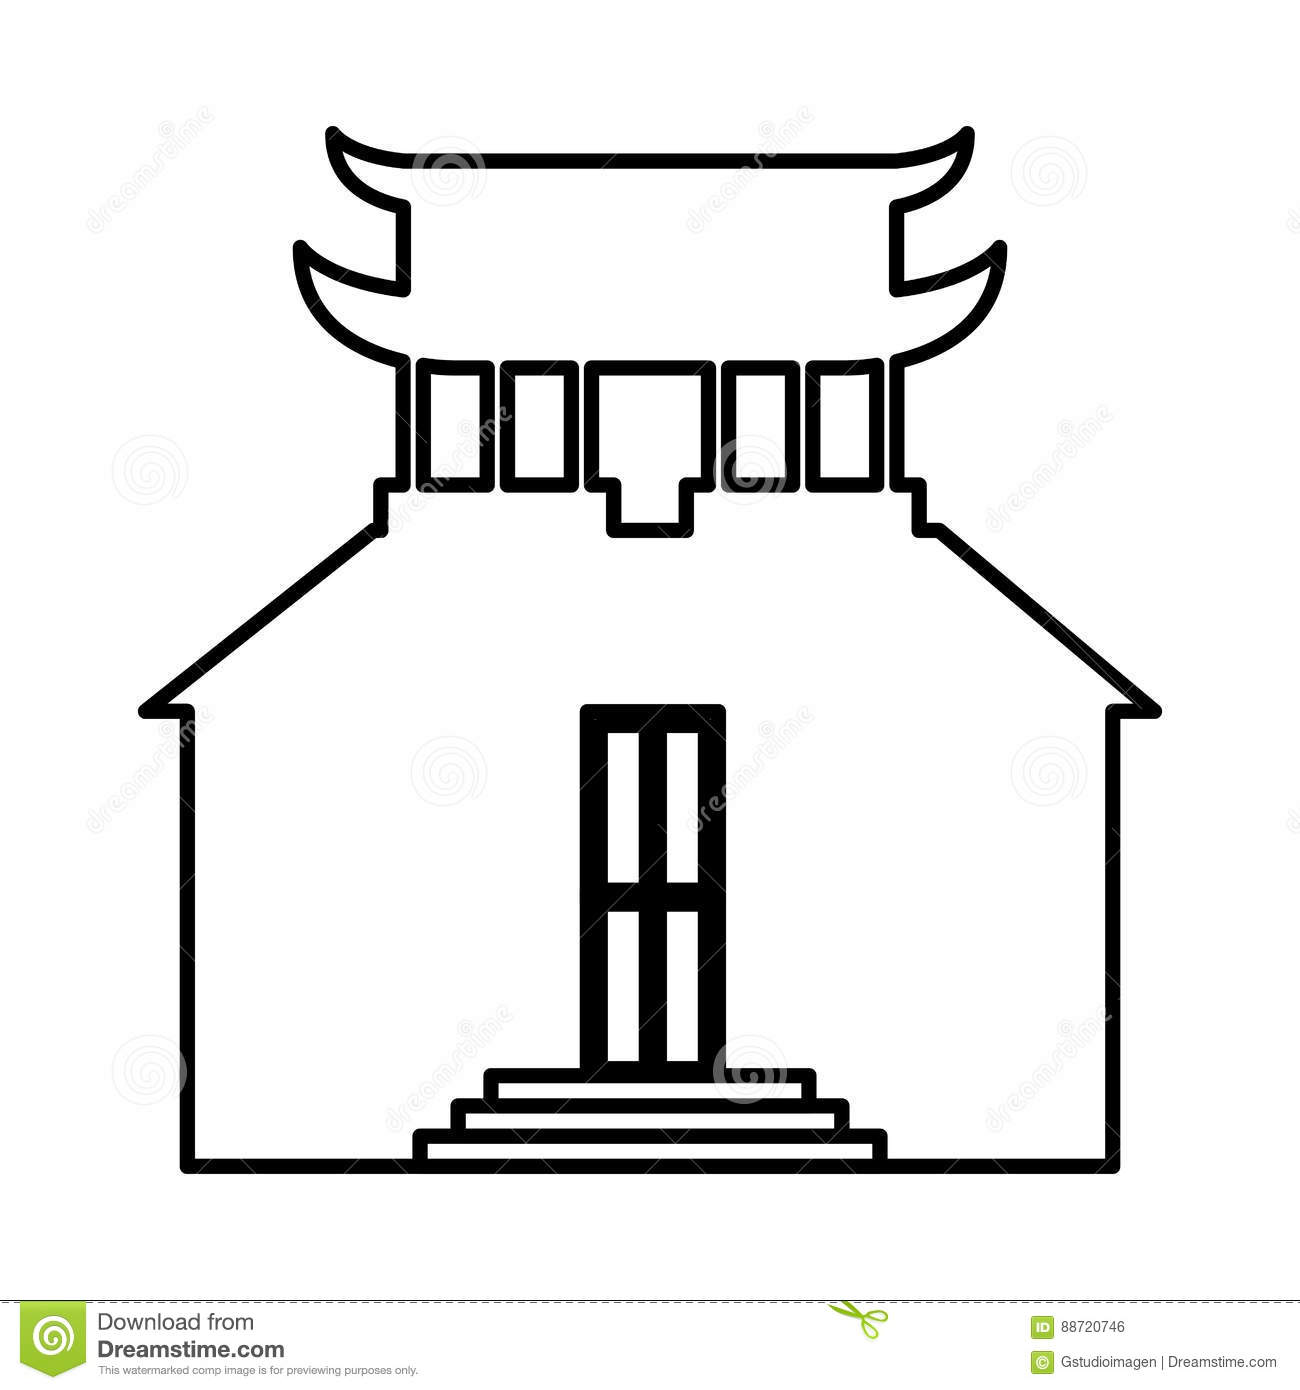 asian building castle icon stock vector - image: 88720746